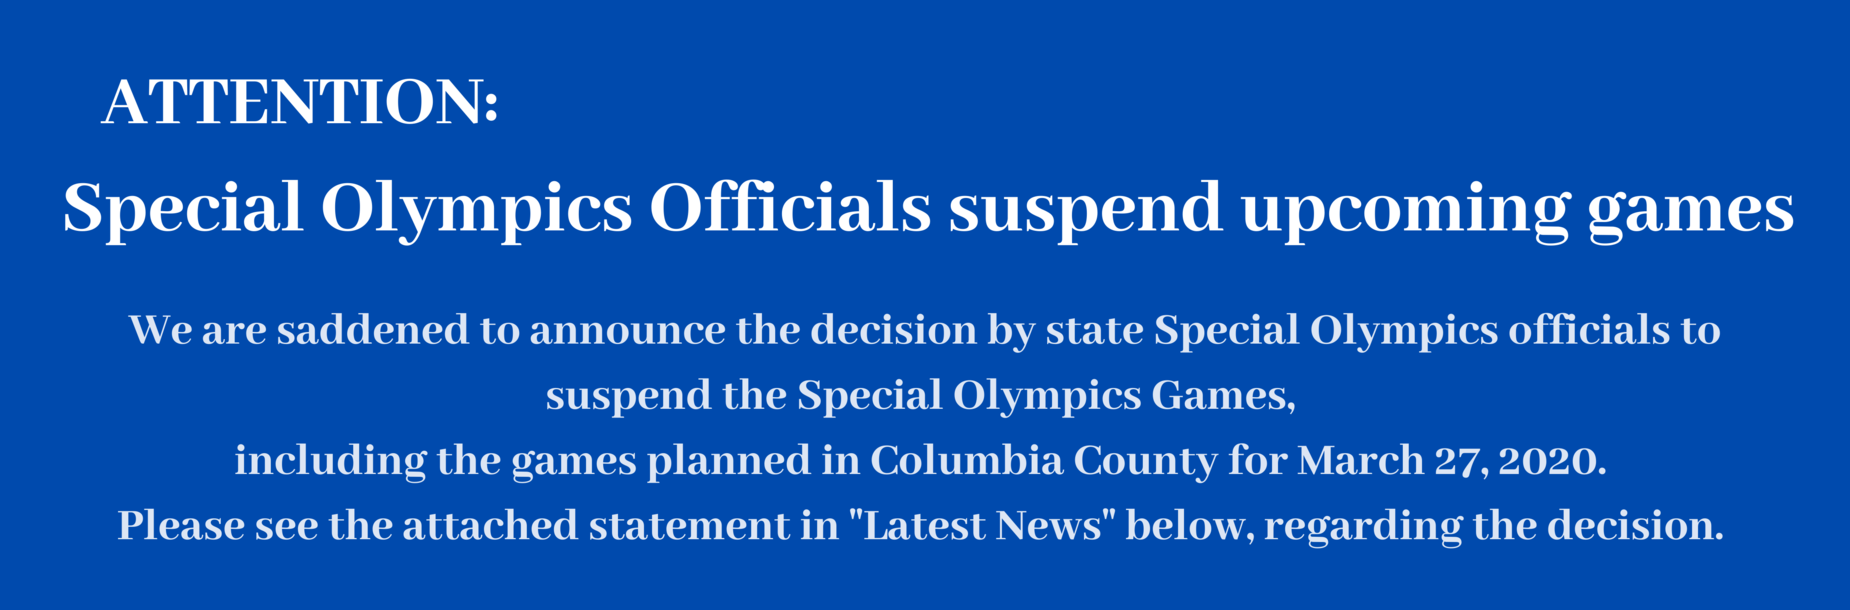 Special Olympics suspended announcement